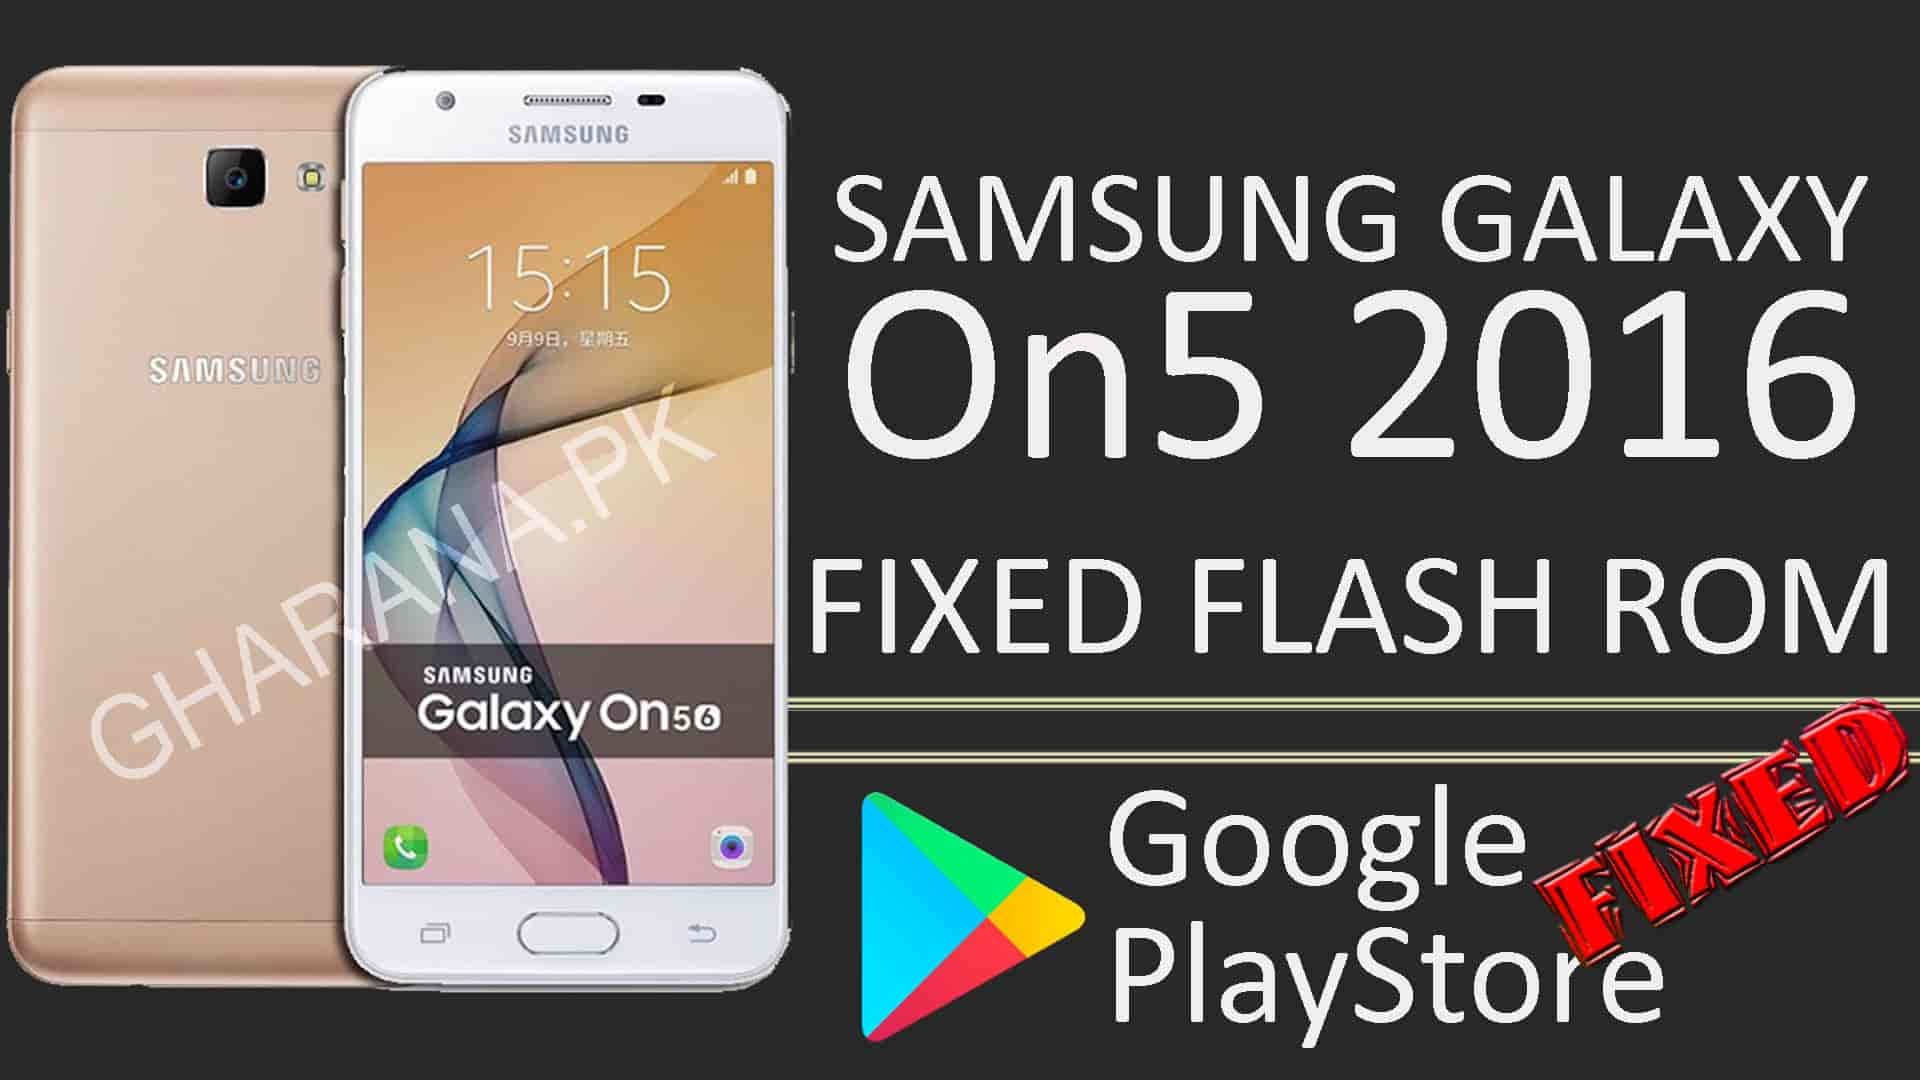 Samsung Galaxy On5 2016 SM-G5528 Fix Rom PlayStore GApps